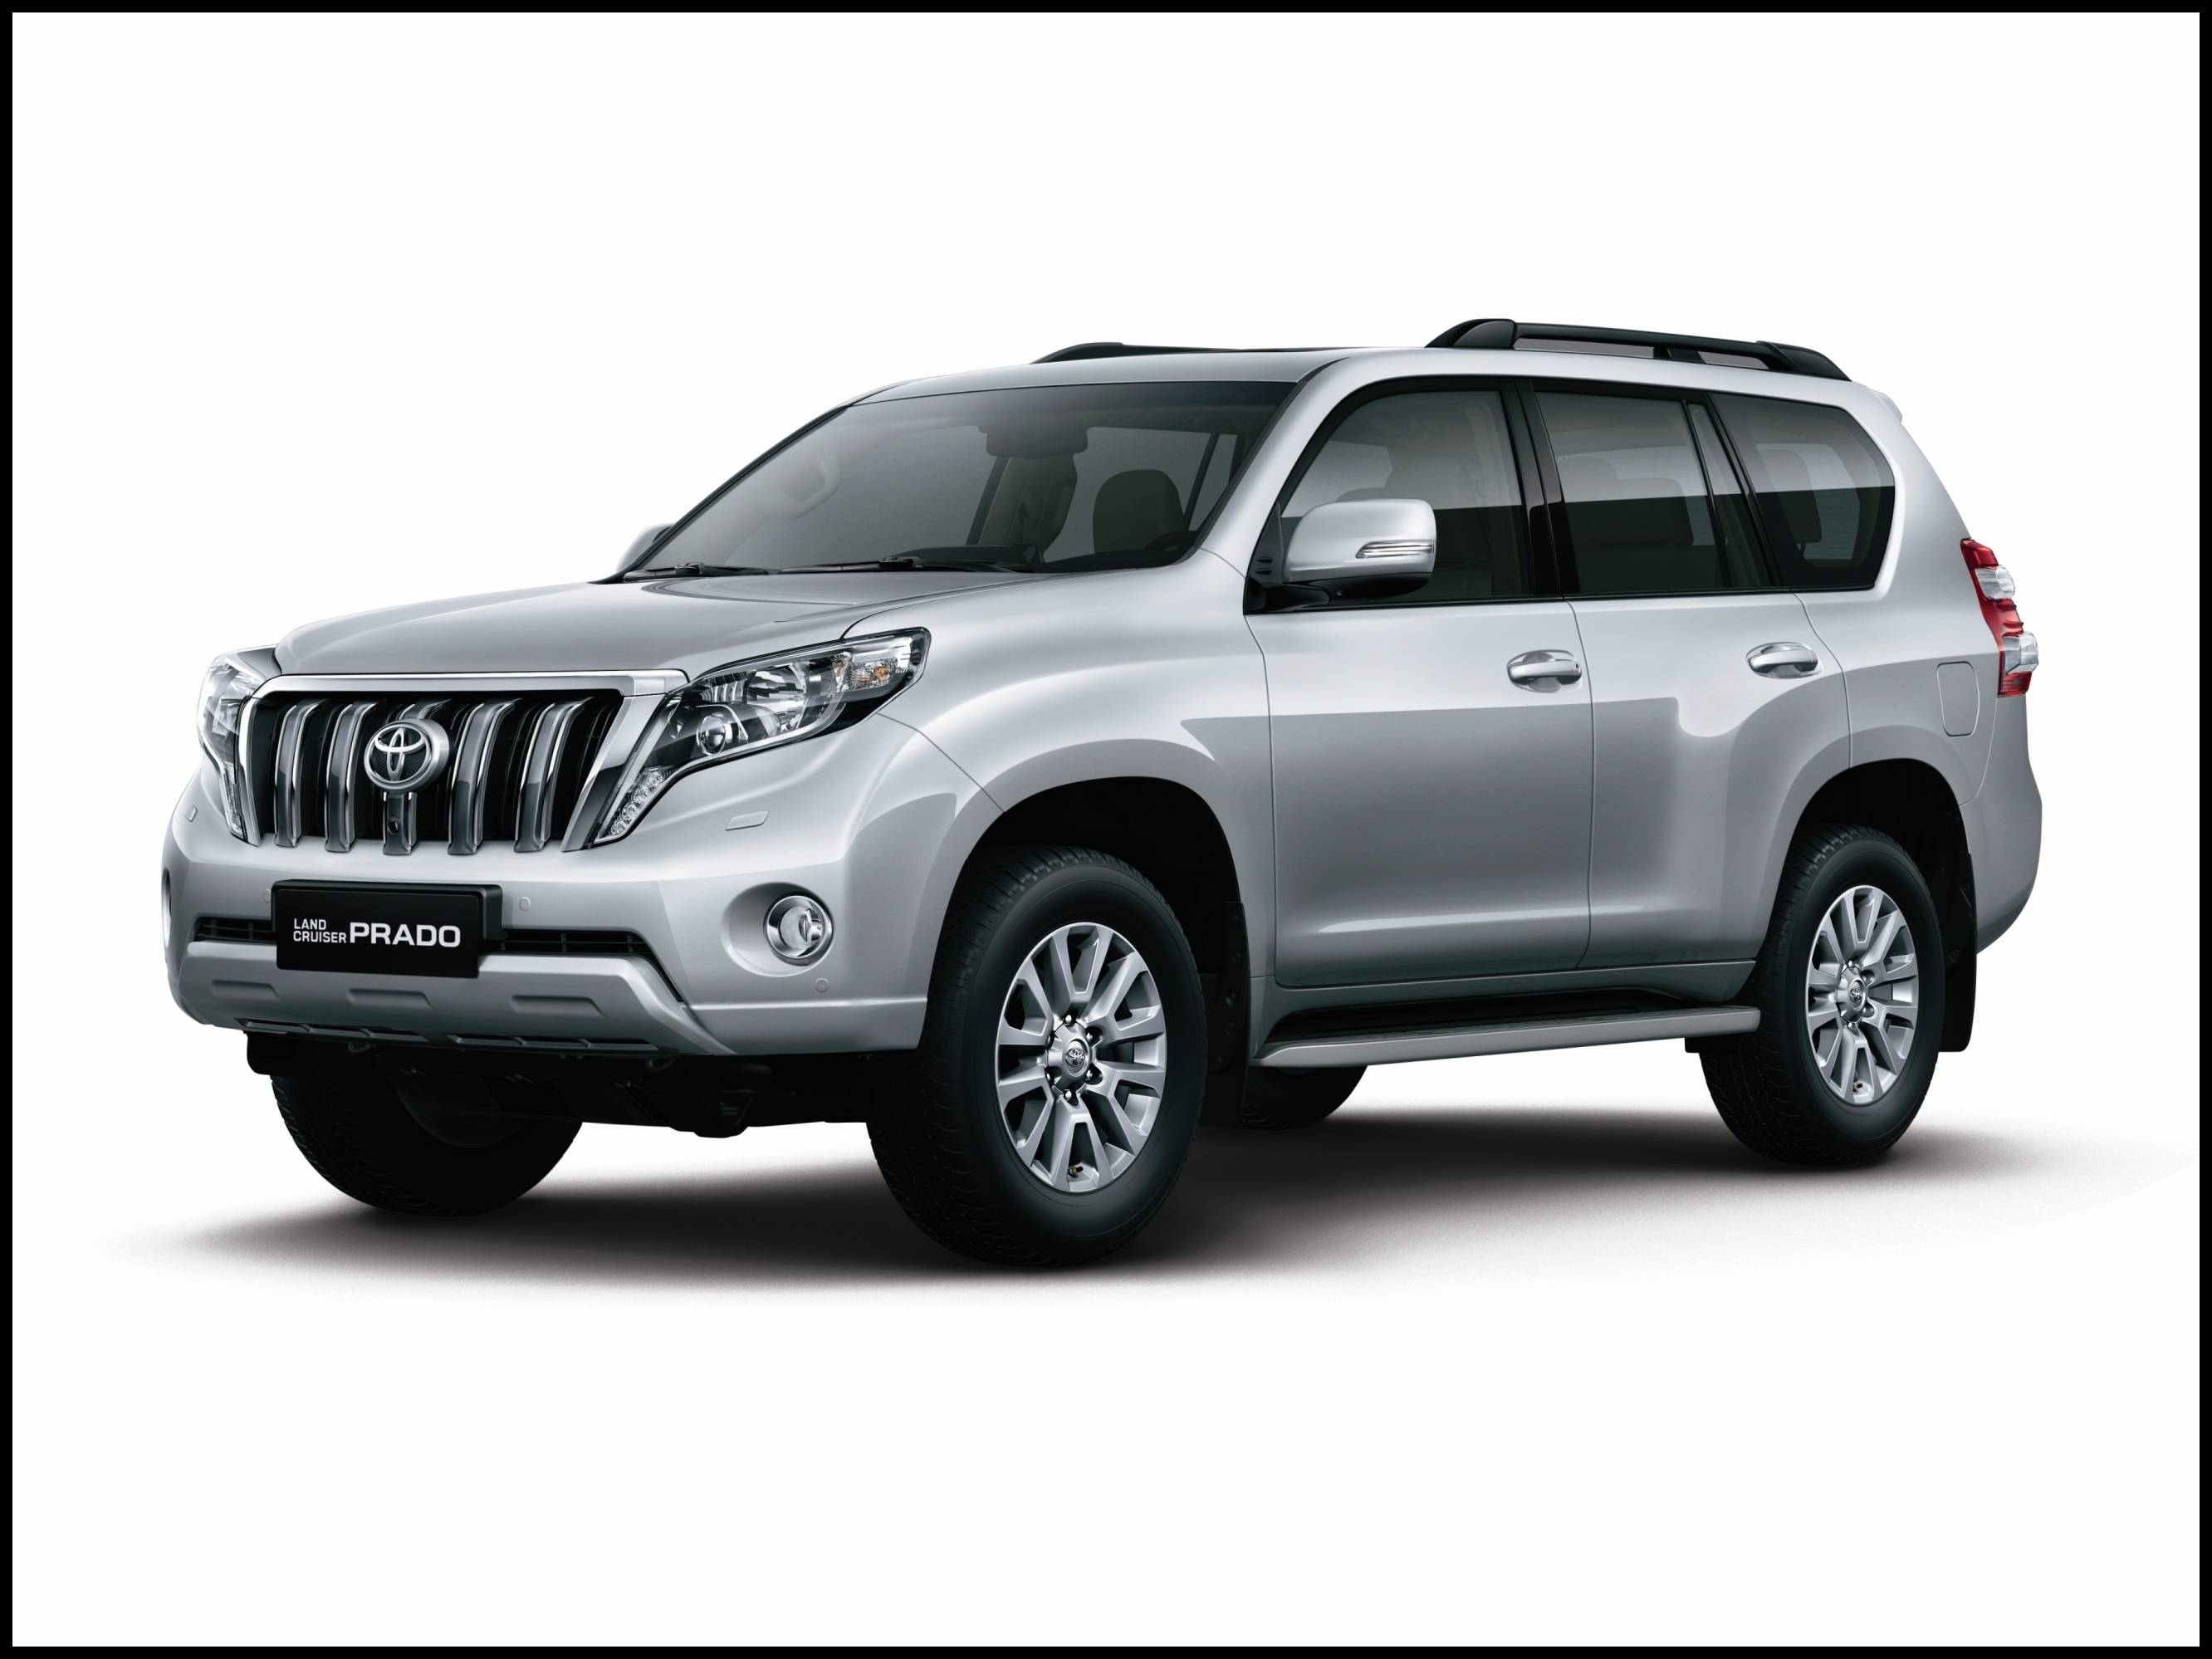 New 2014 Toyota Land Cruiser Prado launched in India priced at Rs 84 87 lakh